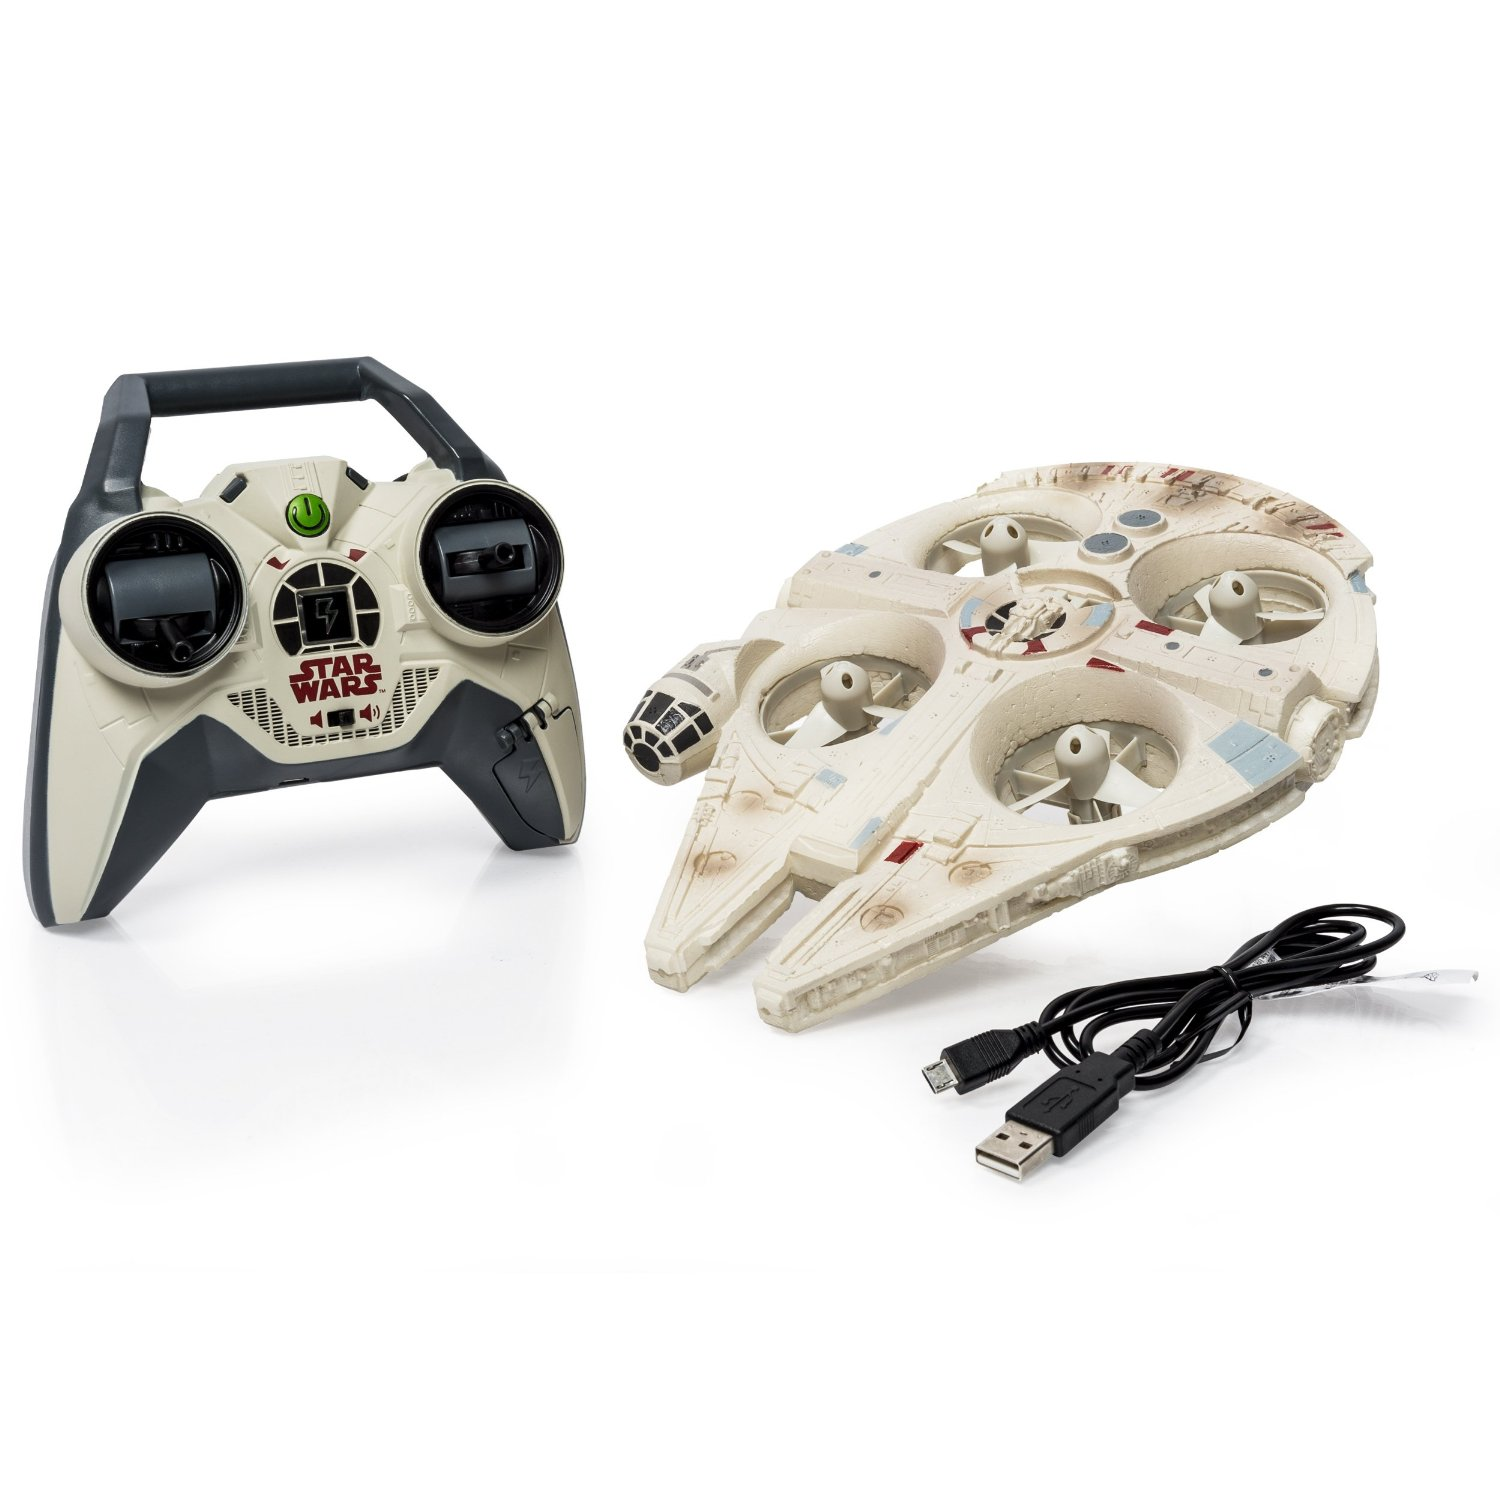 Star Wars Gift Guide Tech and Toys 4